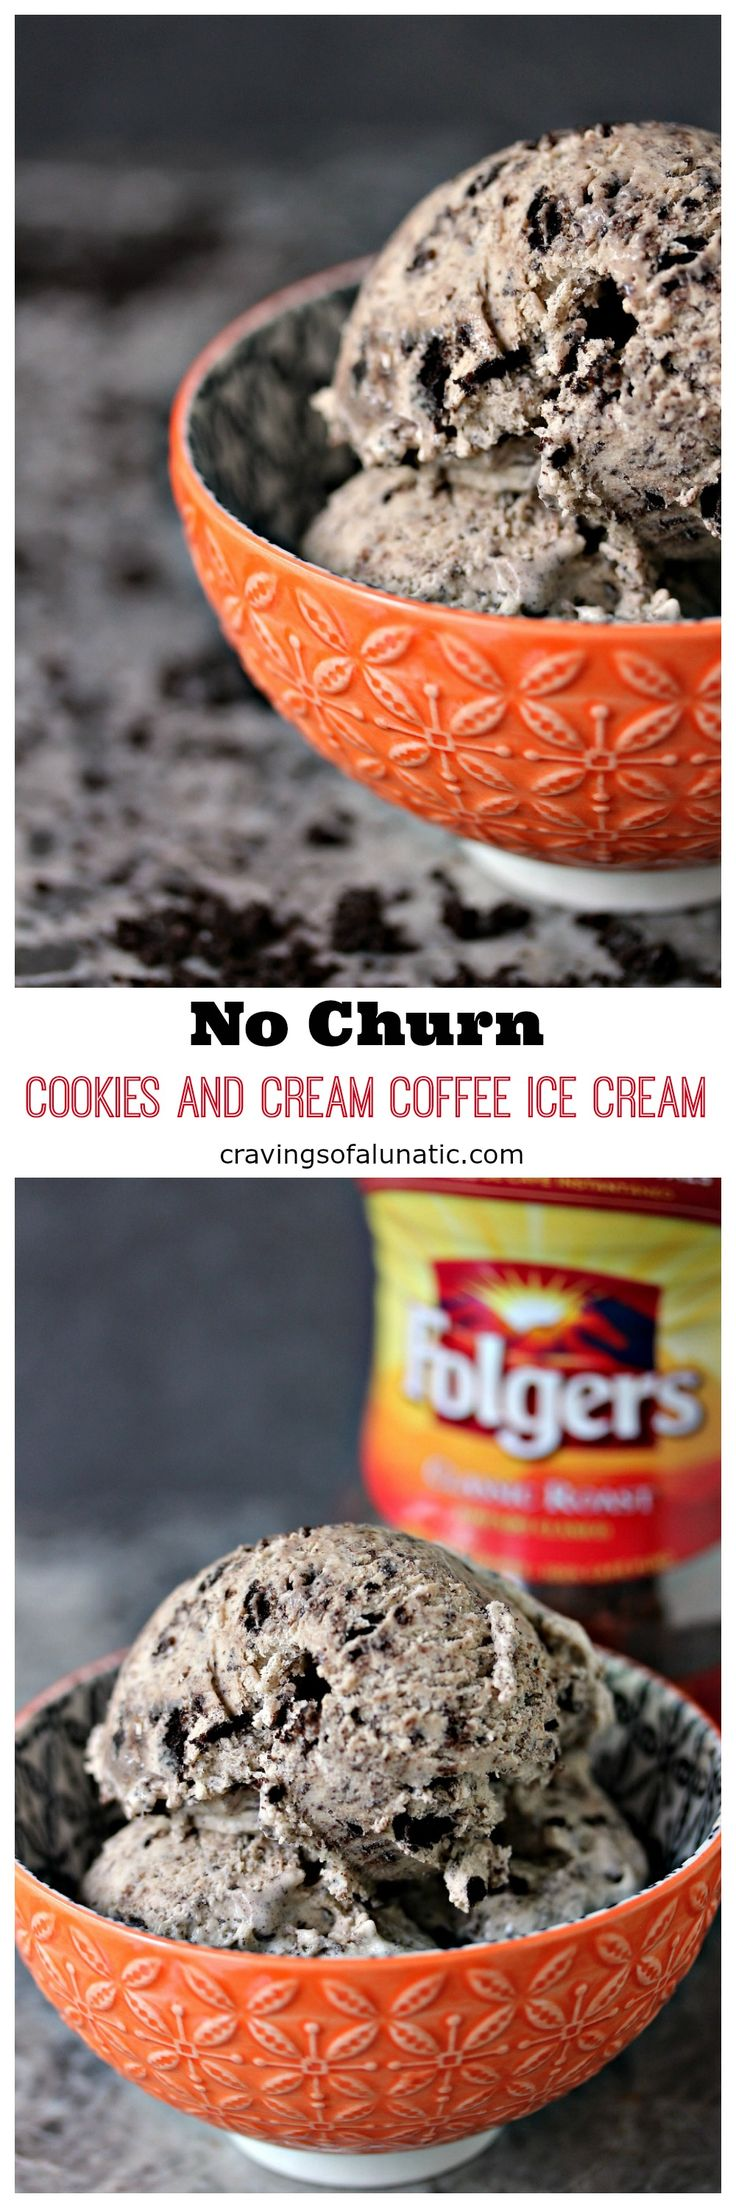 No Churn Cookies and Cream Ice Cream | Cravings of a Lunatic